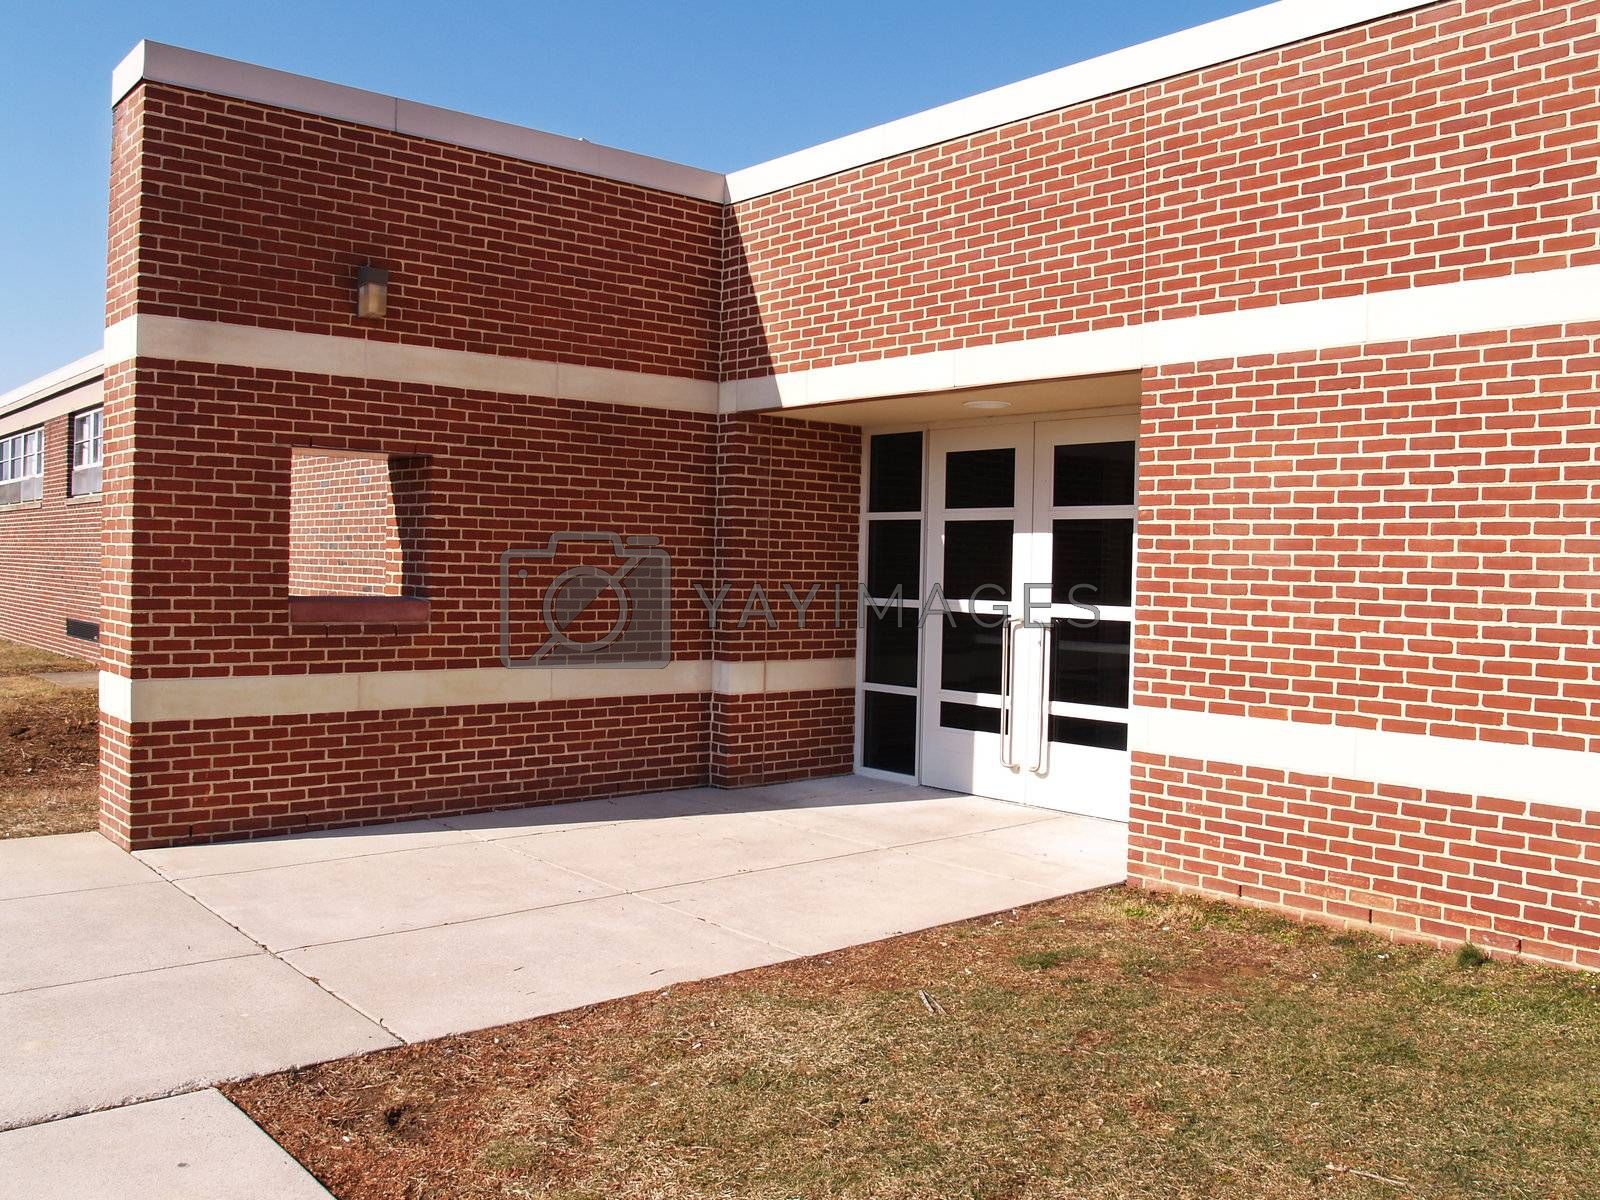 exterior of a modern red brick building